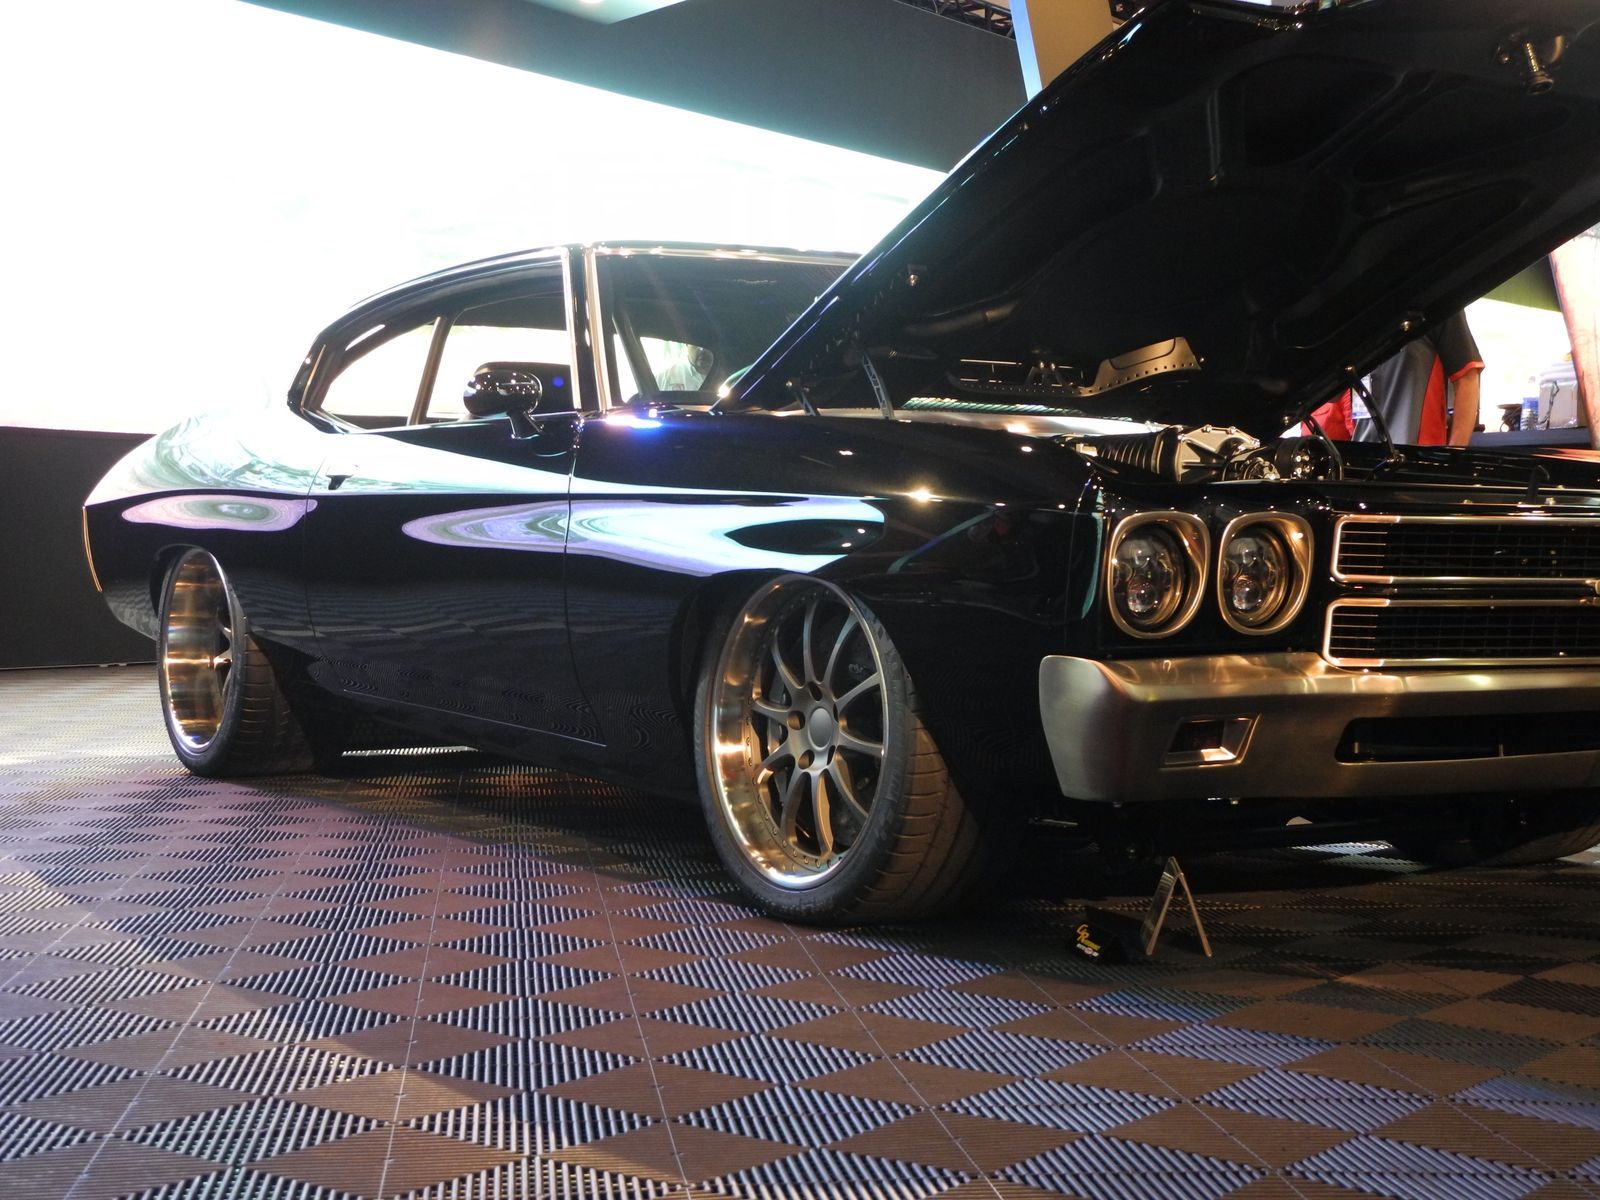 1970 Chevrolet Chevelle | Chevelle by Detroit Speed on Forgeline ZX3P Wheels